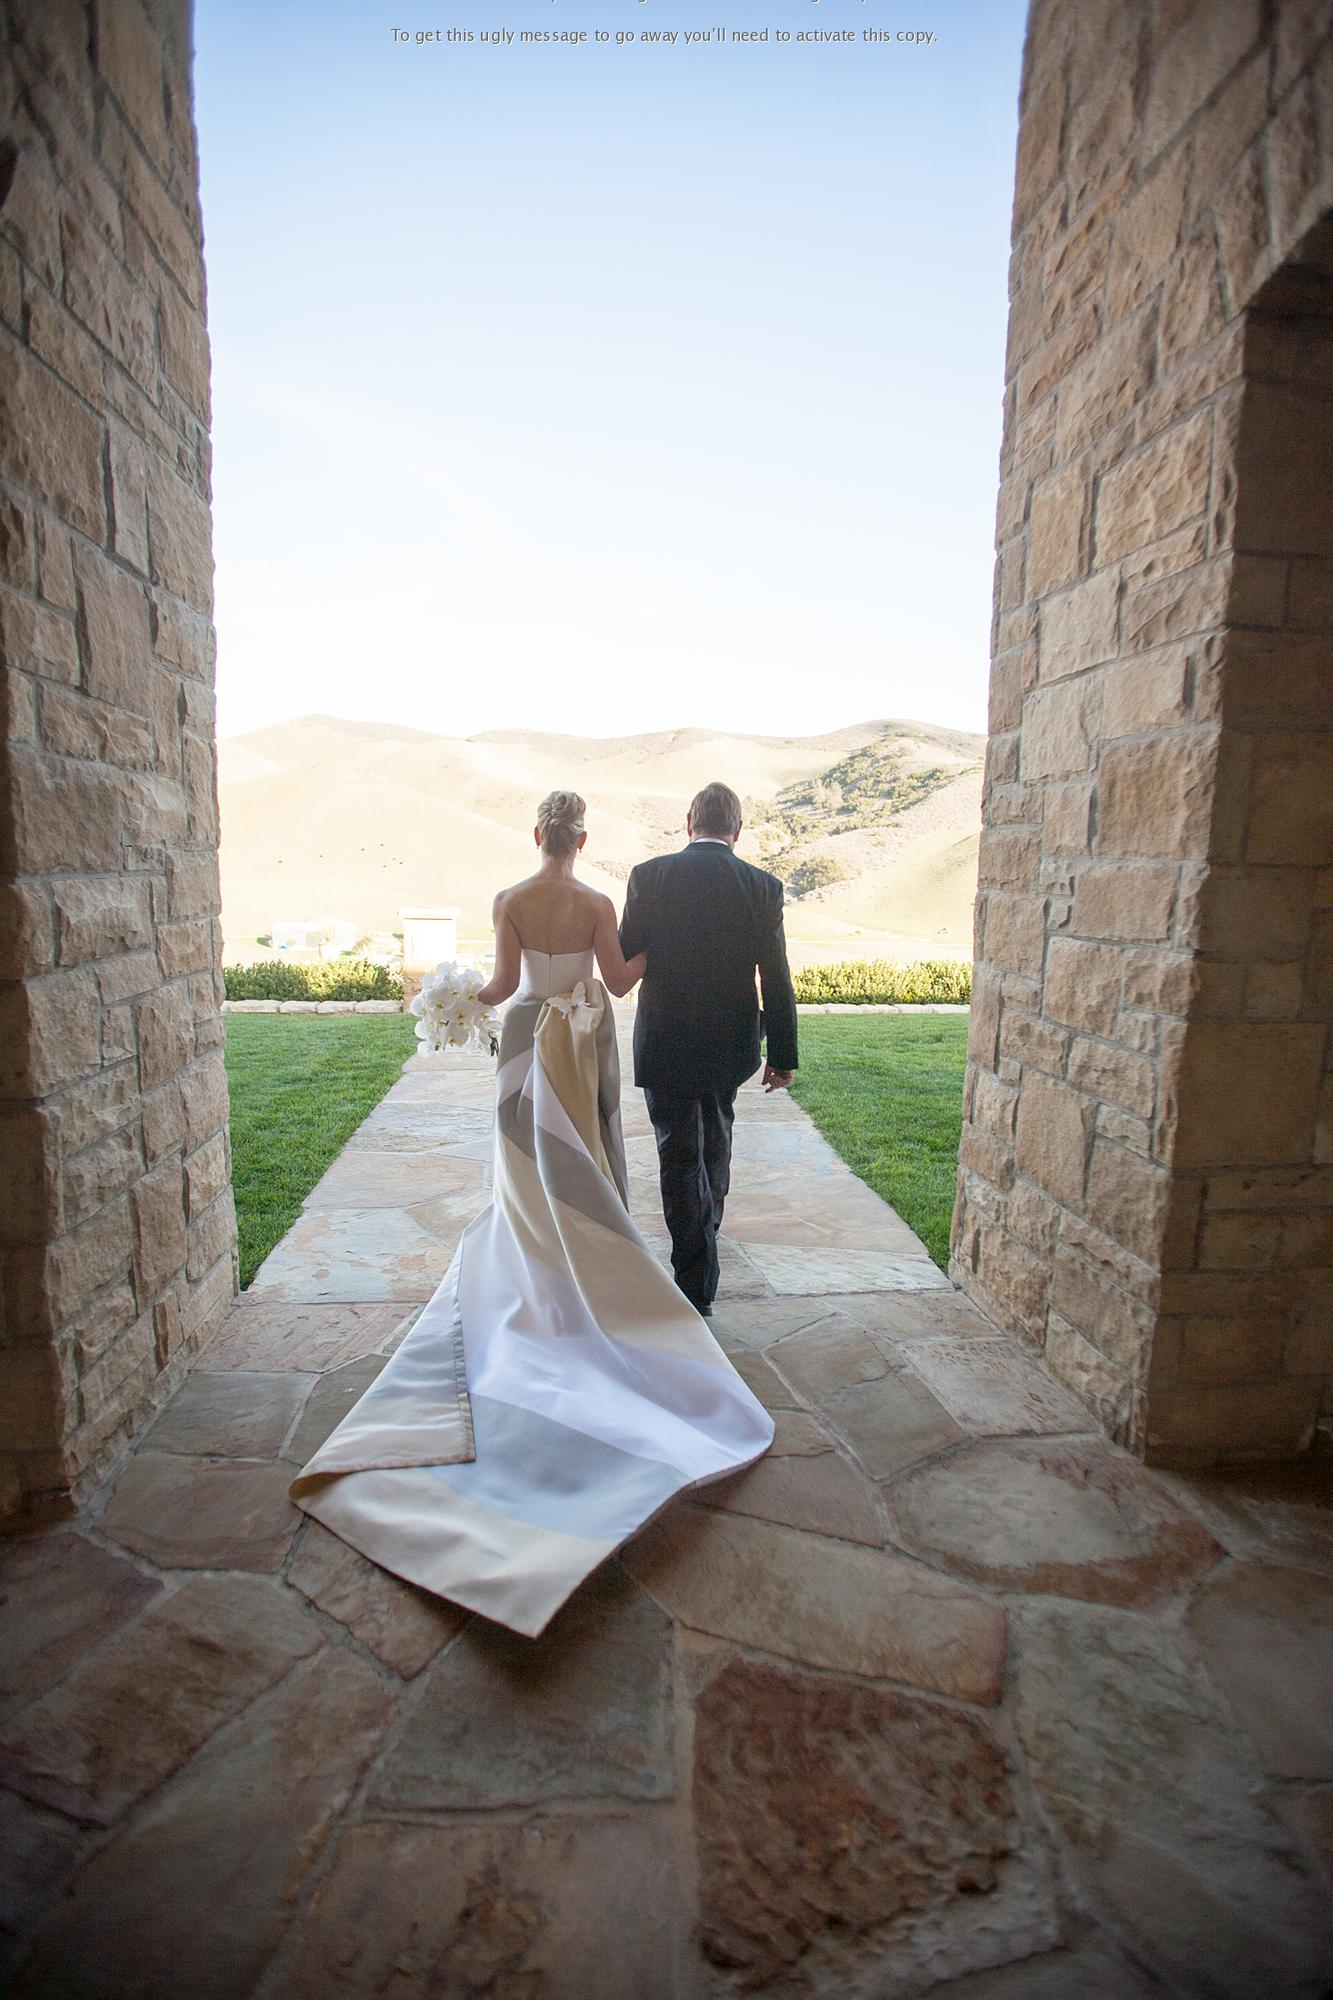 Santa Ynez Private Estate Wedding | Miki & Sonja Photography | www.mikiandsonja.com